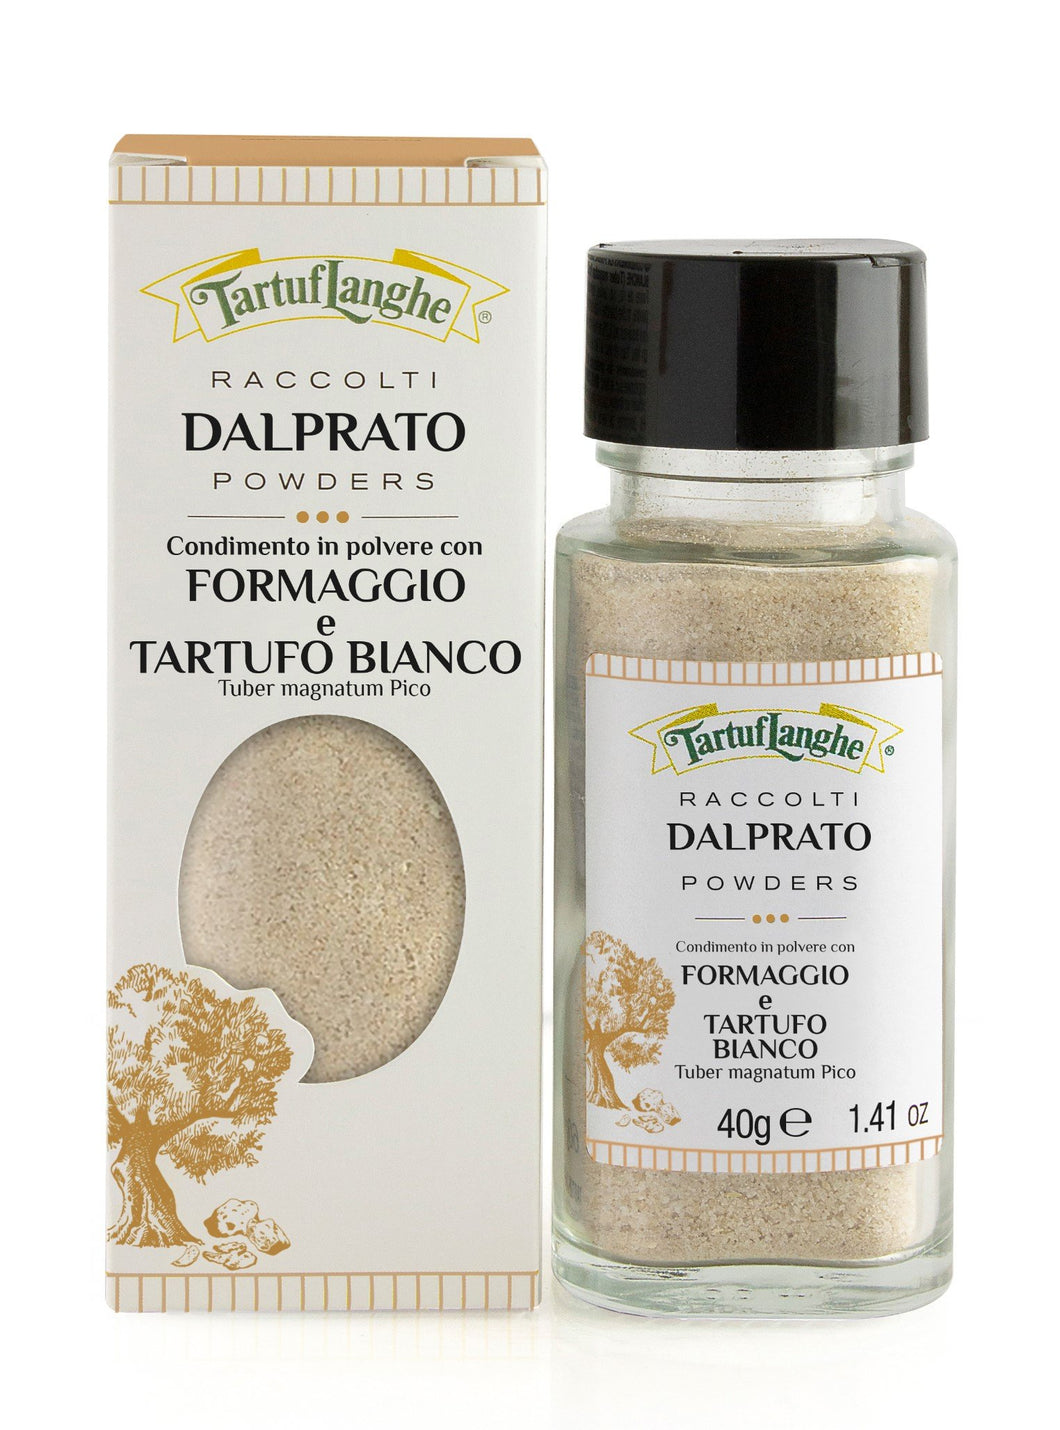 Parmesan Cheese and White Truffle (1.41 Oz)